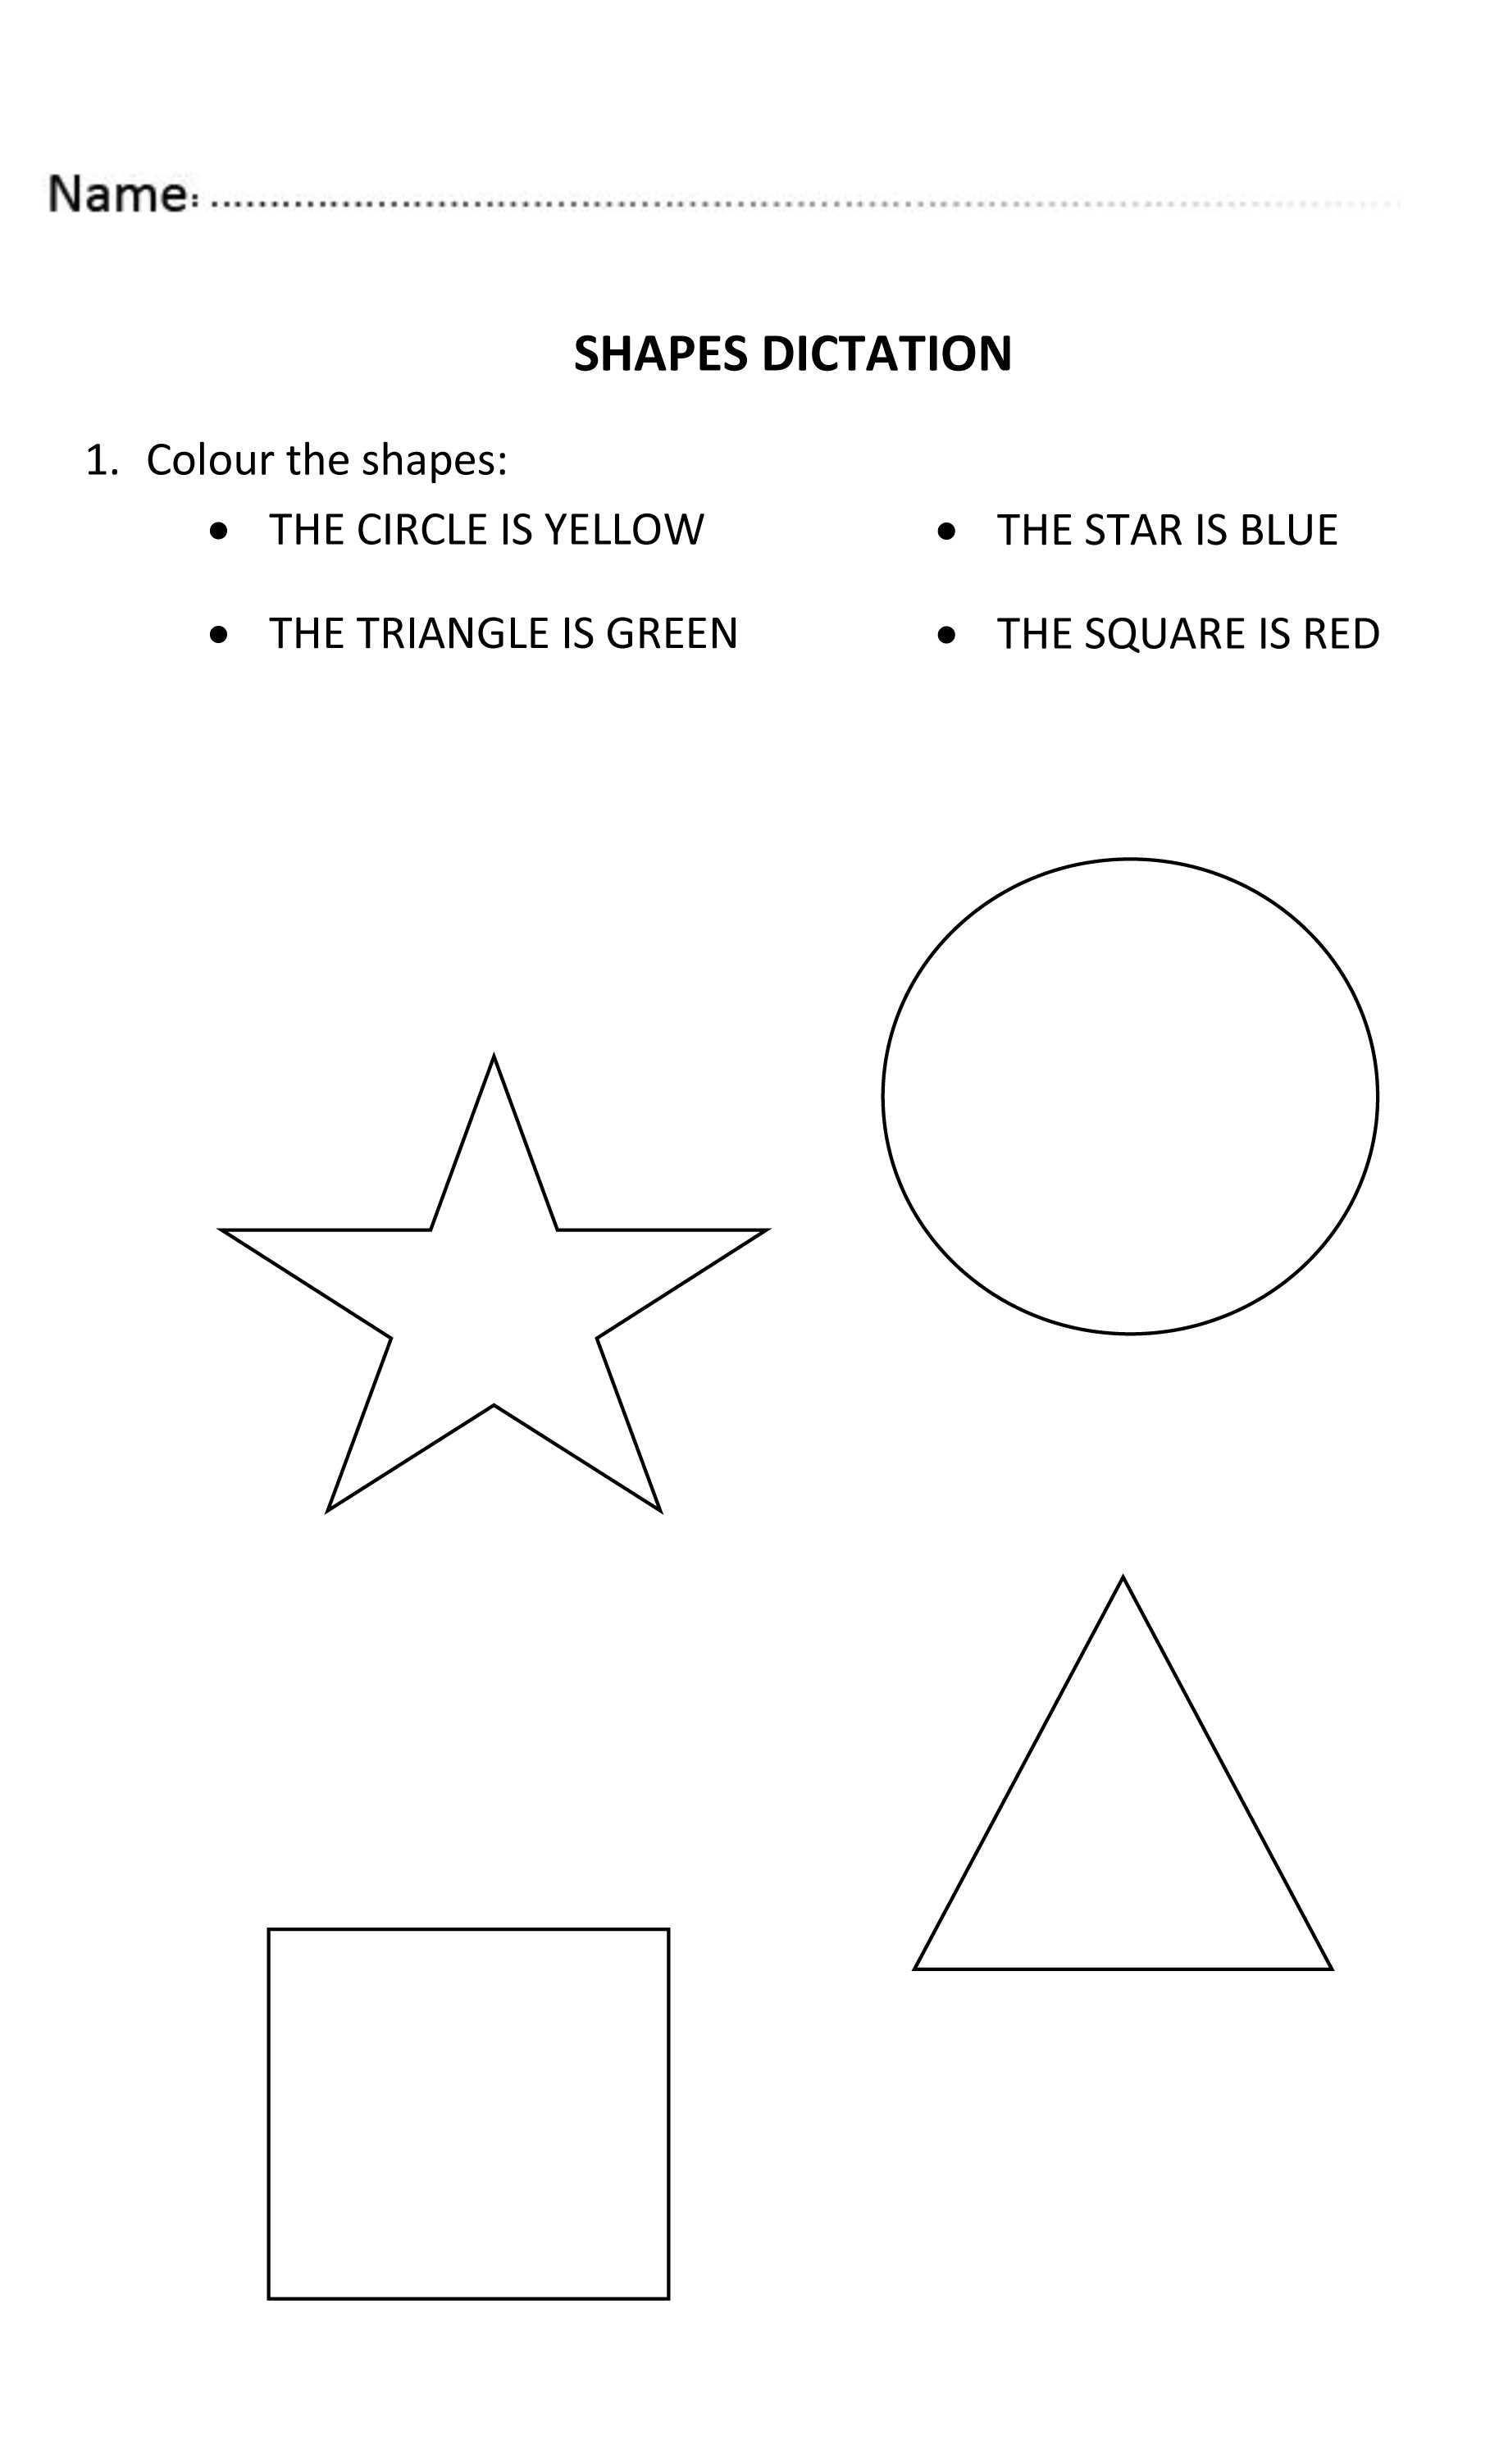 Traceable Name Worksheets or Fun Shapes Dictation for Nursery and Reception Students